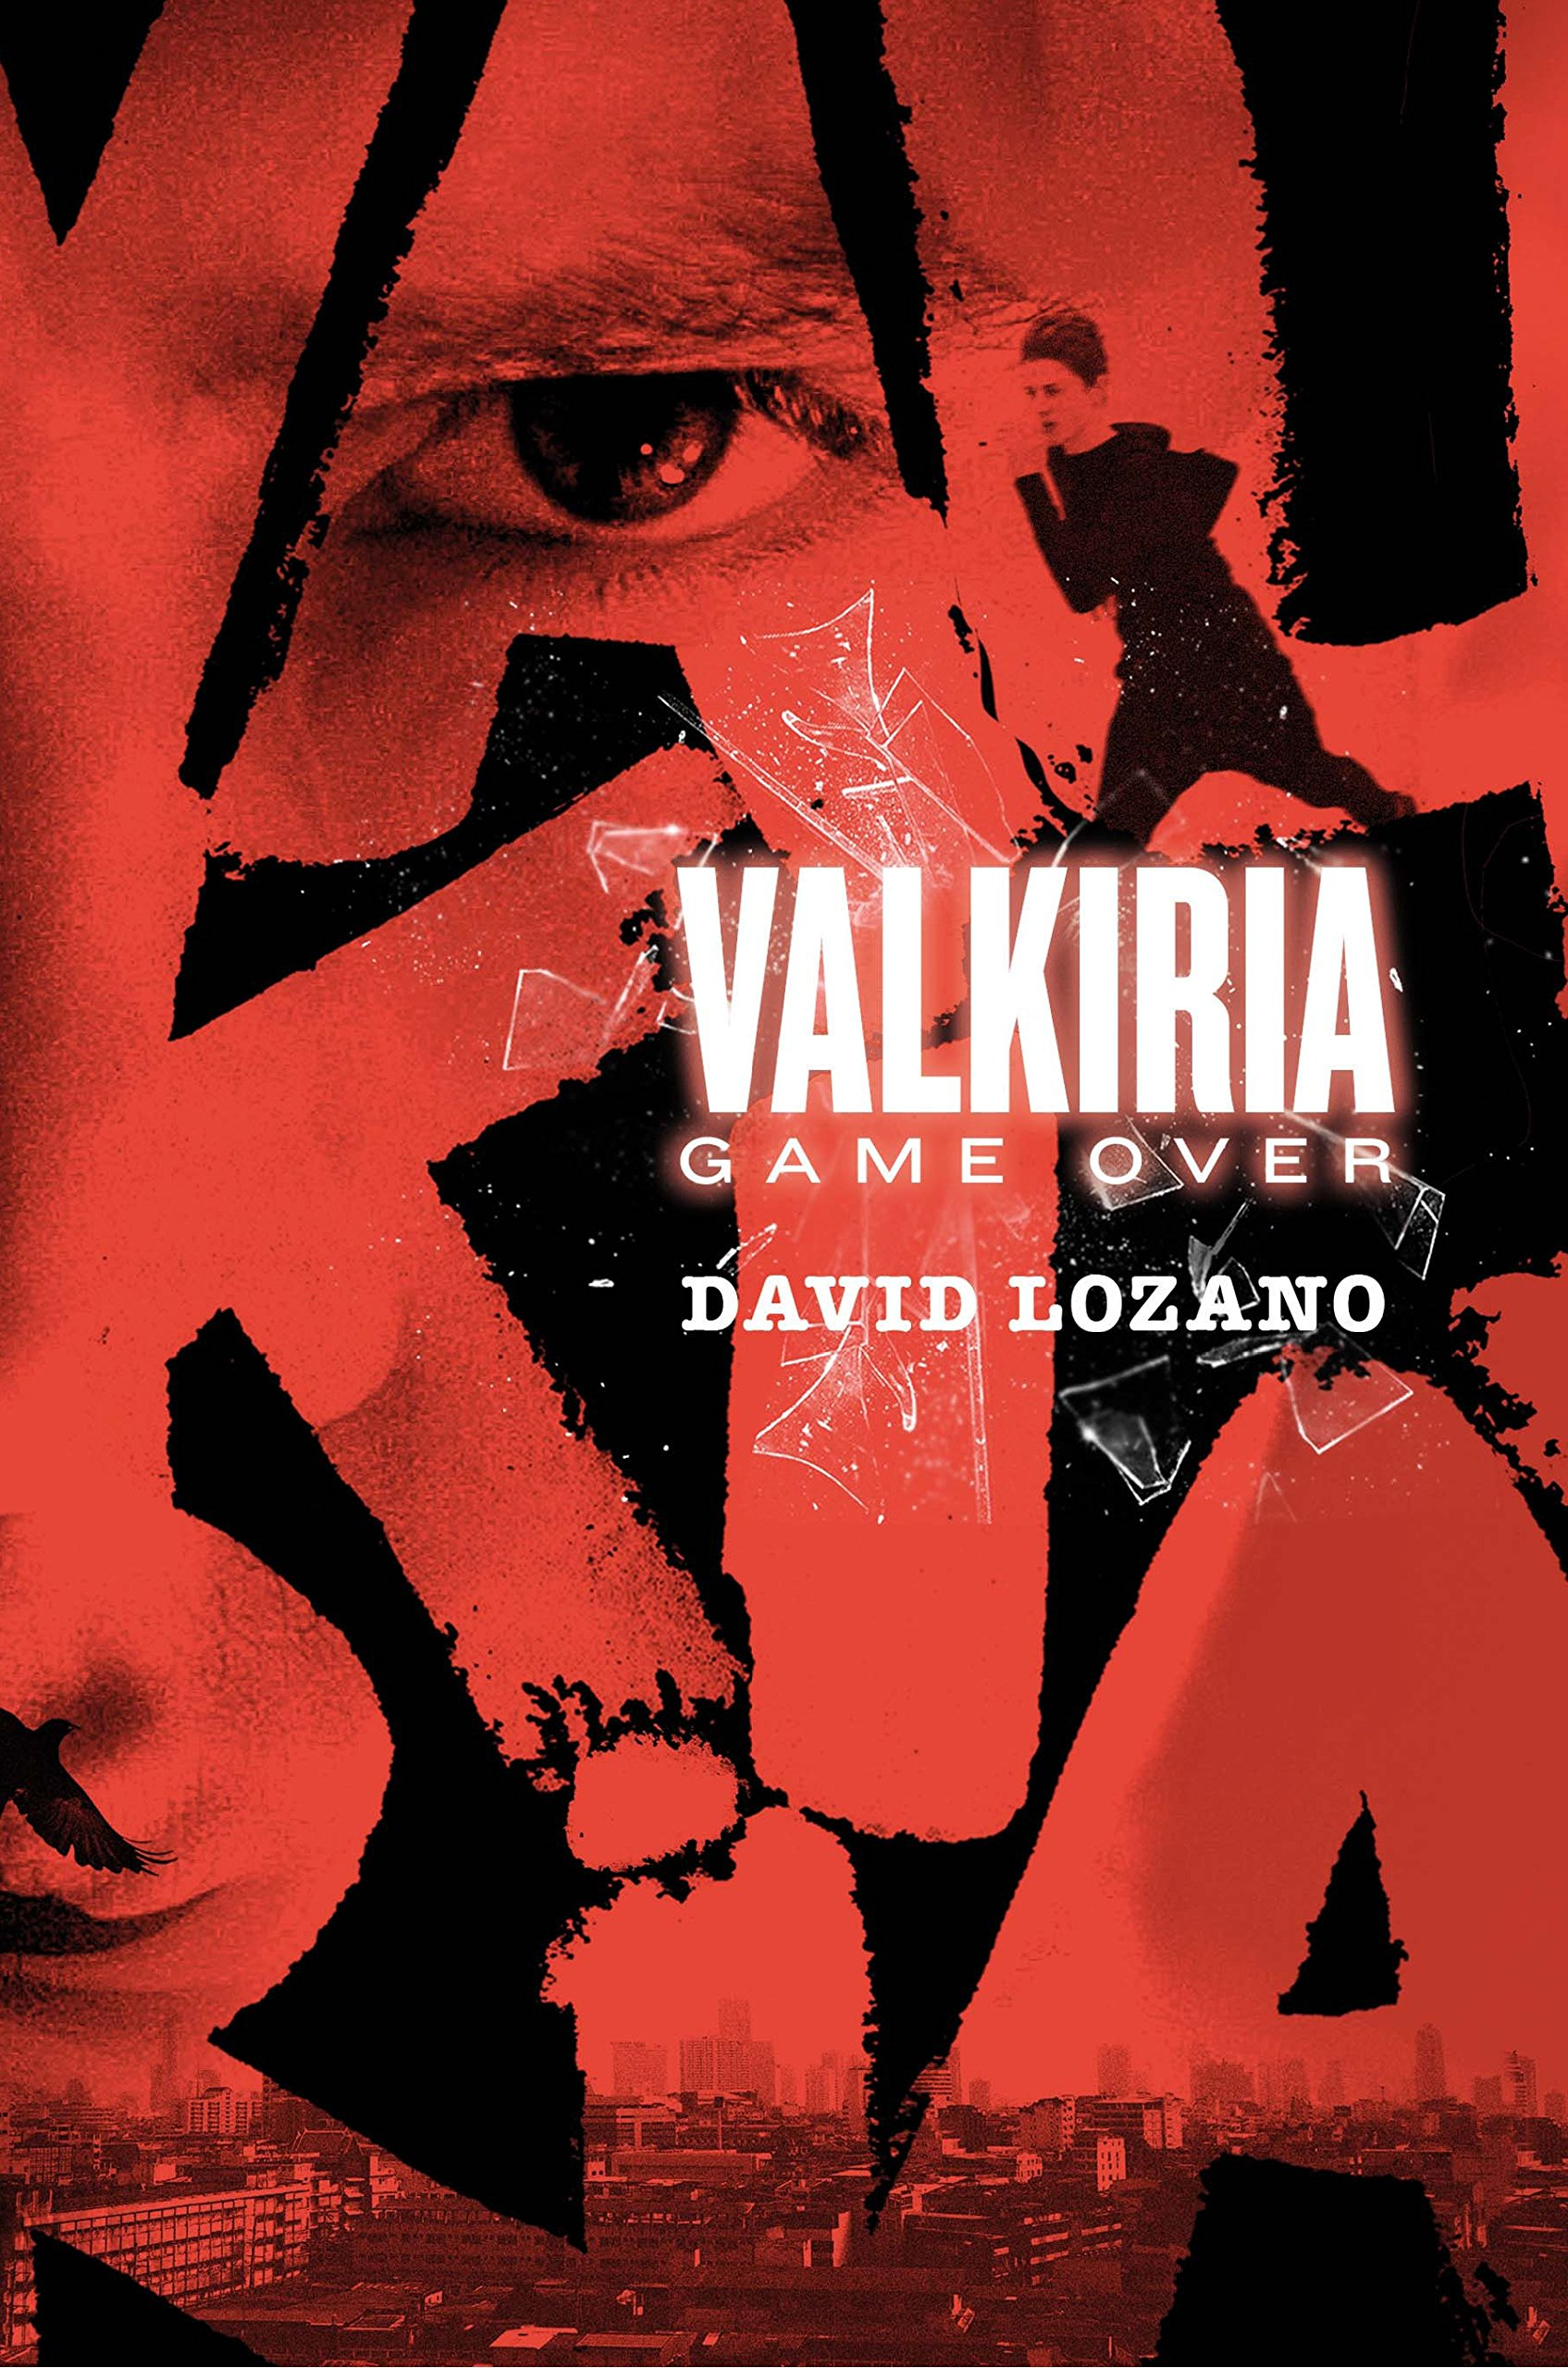 Valkiria: Game Over (Gran Angular): Amazon.es: David Lozano Garbala: Libros